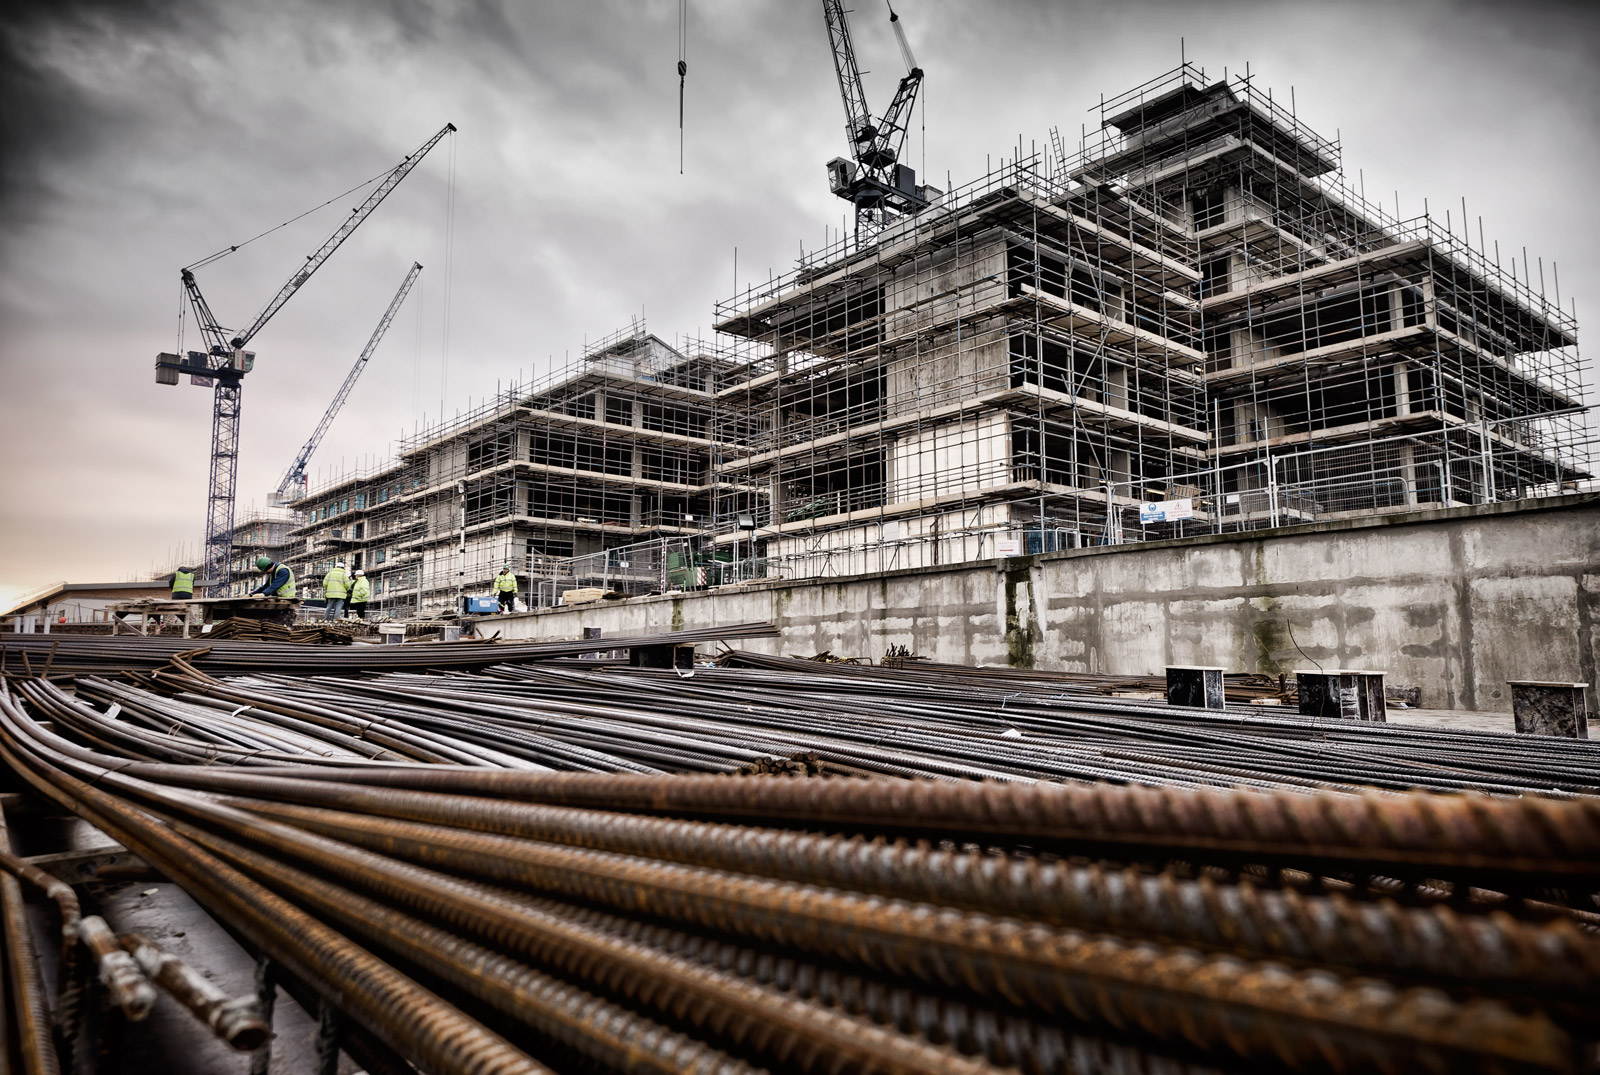 Construction in 2018: Steady as she Goes| Concrete Construction ...